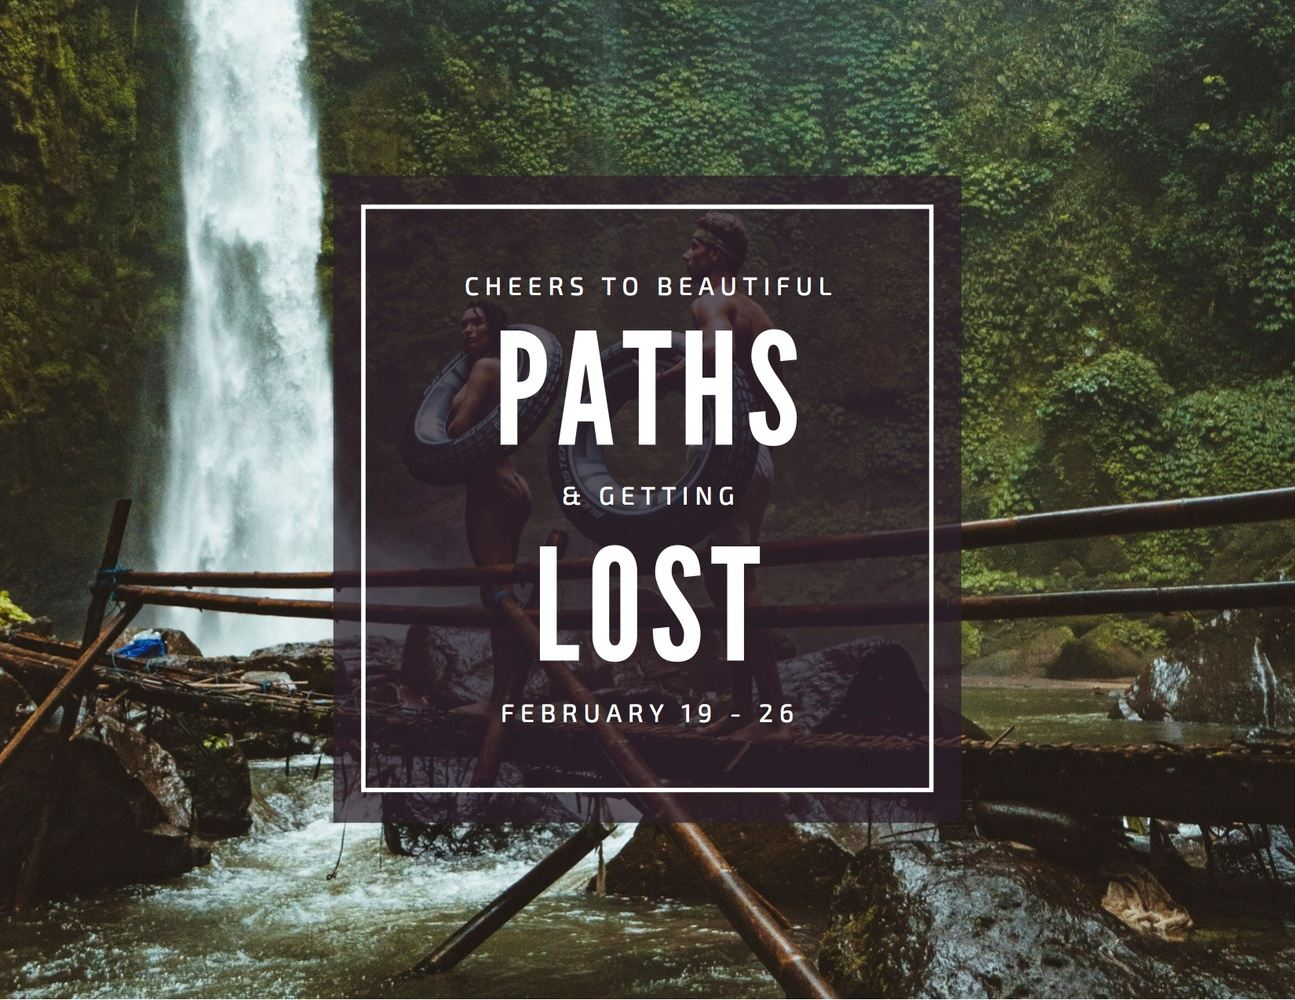 Beautiful Paths & Getting Lost